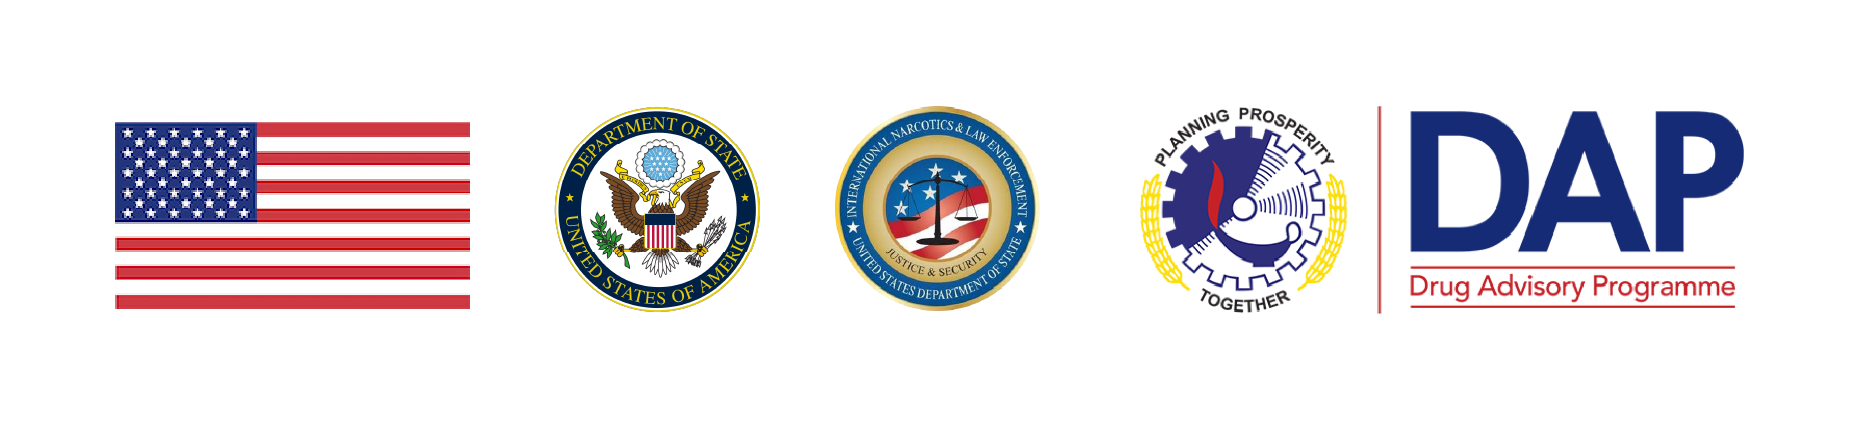 United States Flag, U.S Department of State seal. International Narcotics and Law Enforcement seal. Colombo Plan and DAP Logo